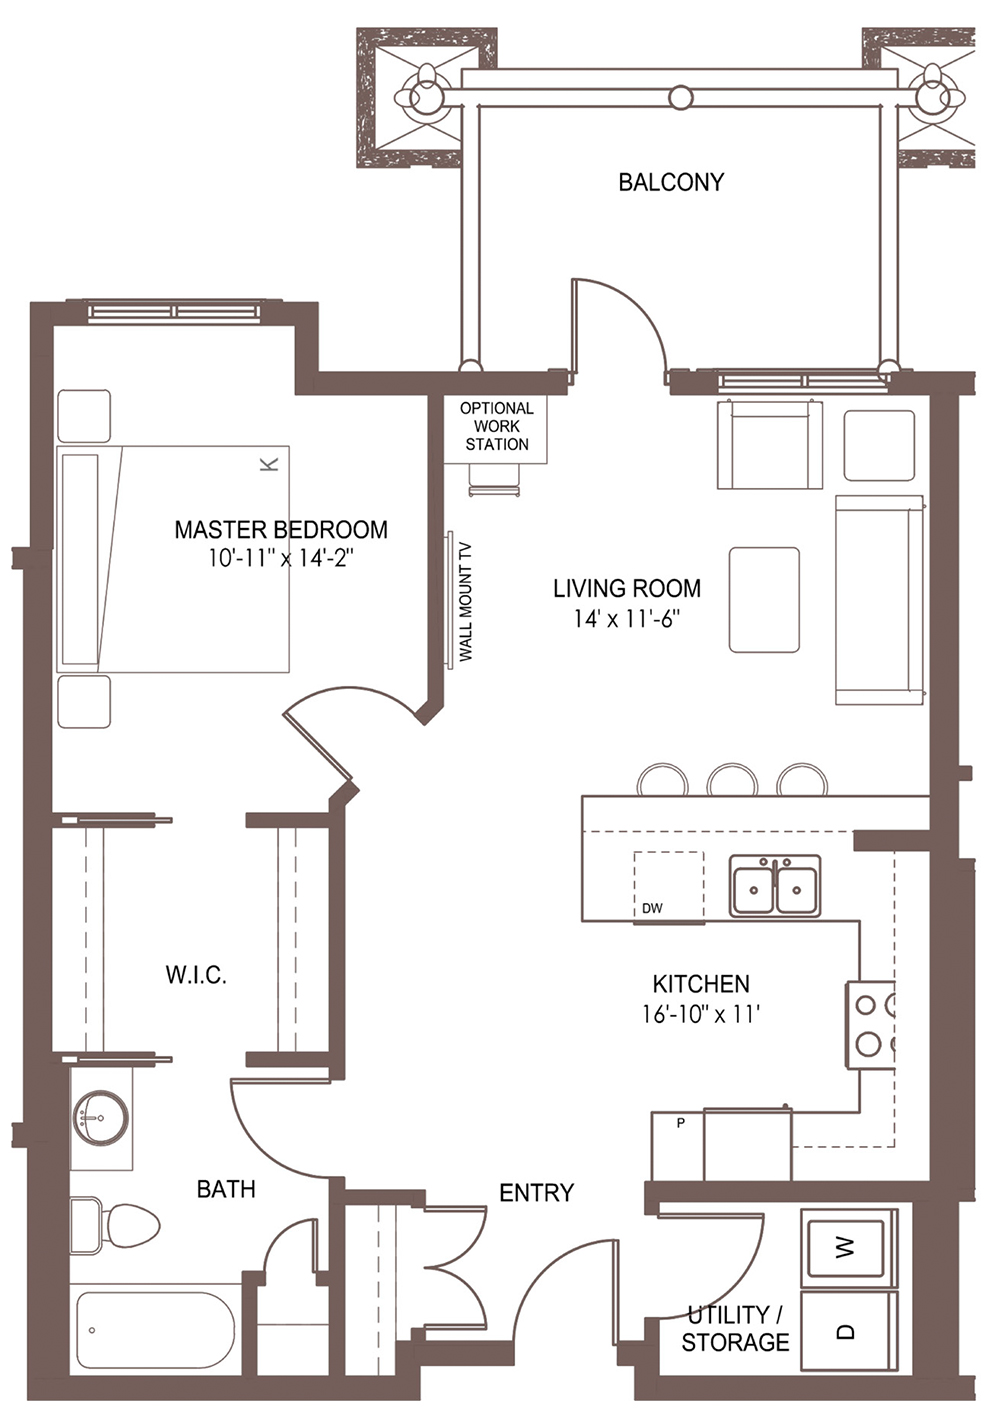 Unit 1104 floor plan